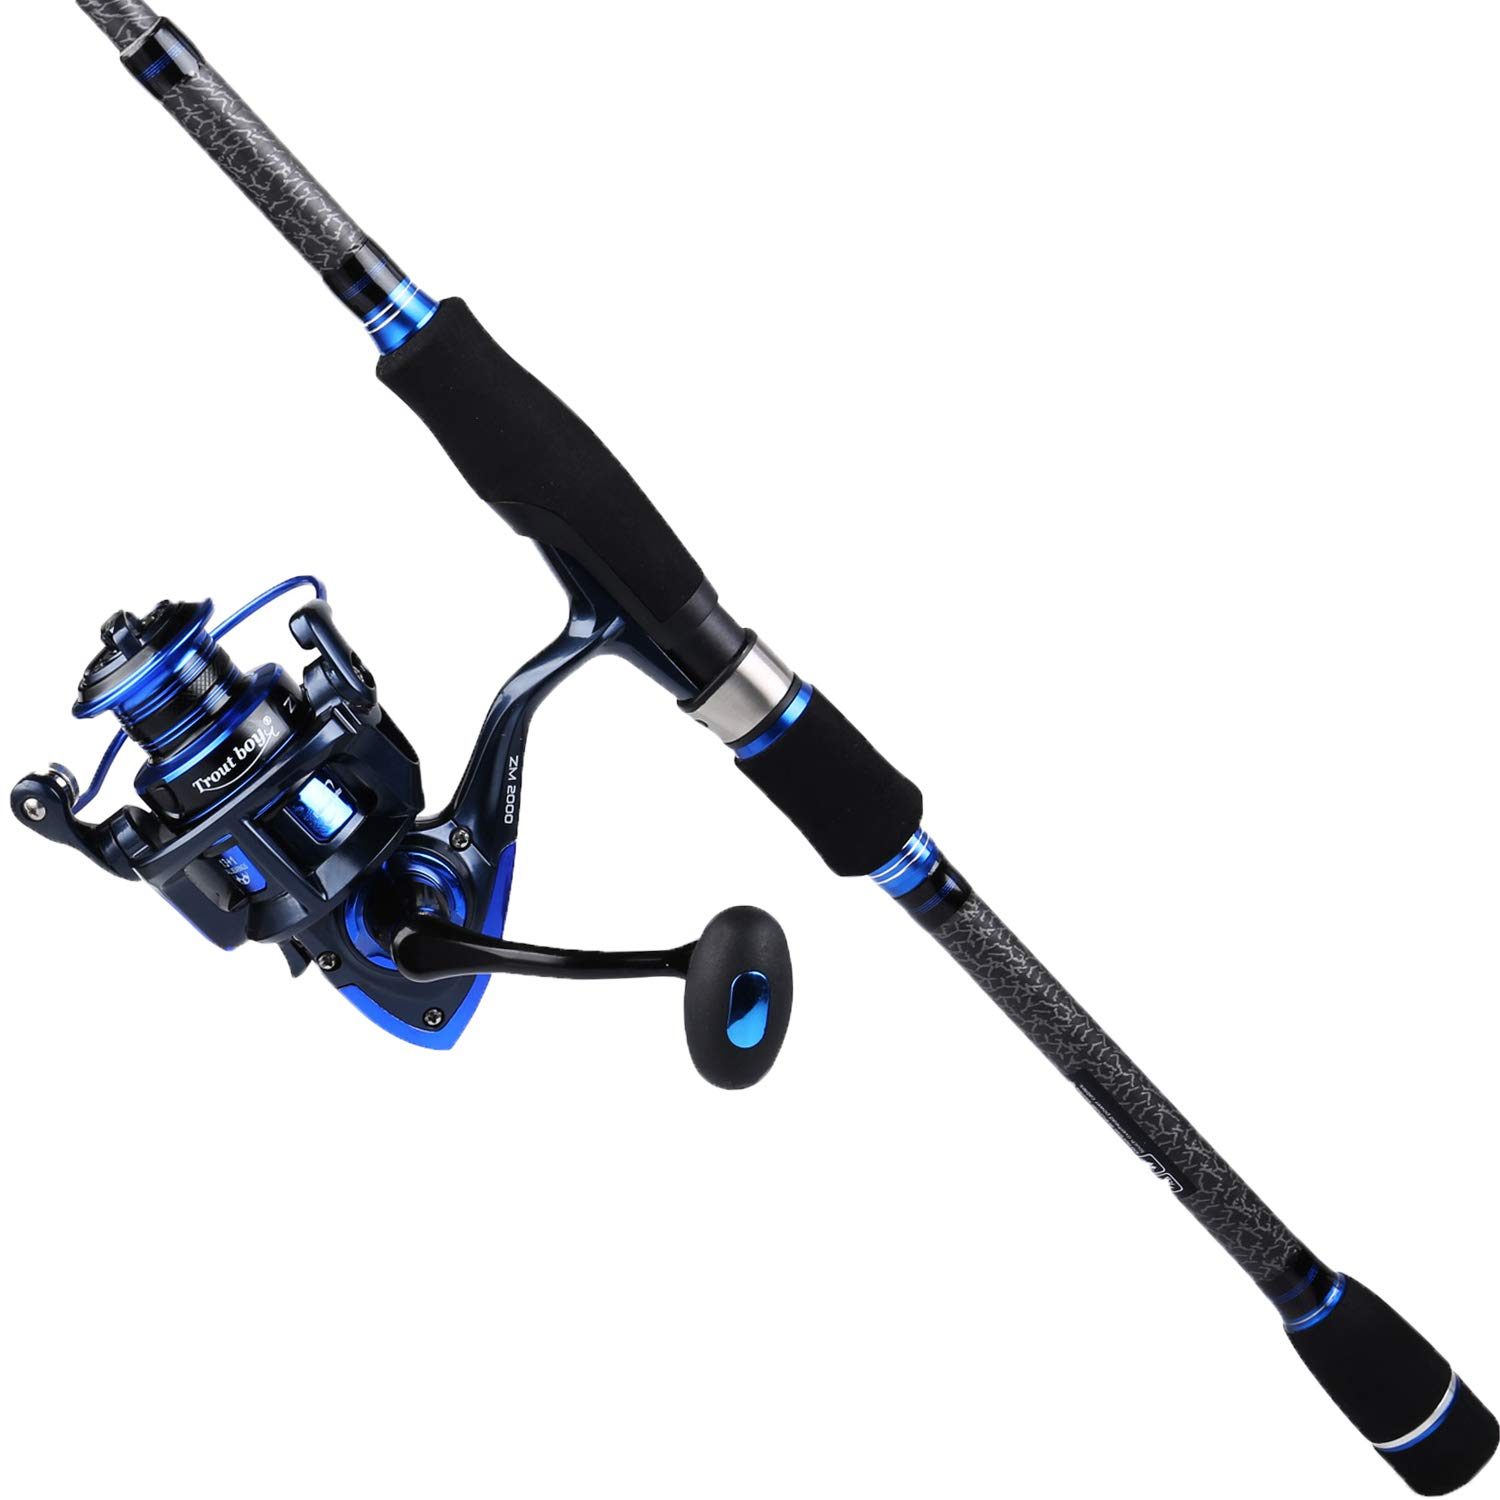 Sougayilang Telescopic 24-Ton Fishing Rod and Reel Combos with Reel Lightweight Rod 24-Ton Graphite Rod and Spinning reels-5.98Ft Rod with ZM2000 Reel リール 141[並行輸入] B07MJ5DWWC, クスバシハクイ:74aab66d --- ferraridentalclinic.com.lb